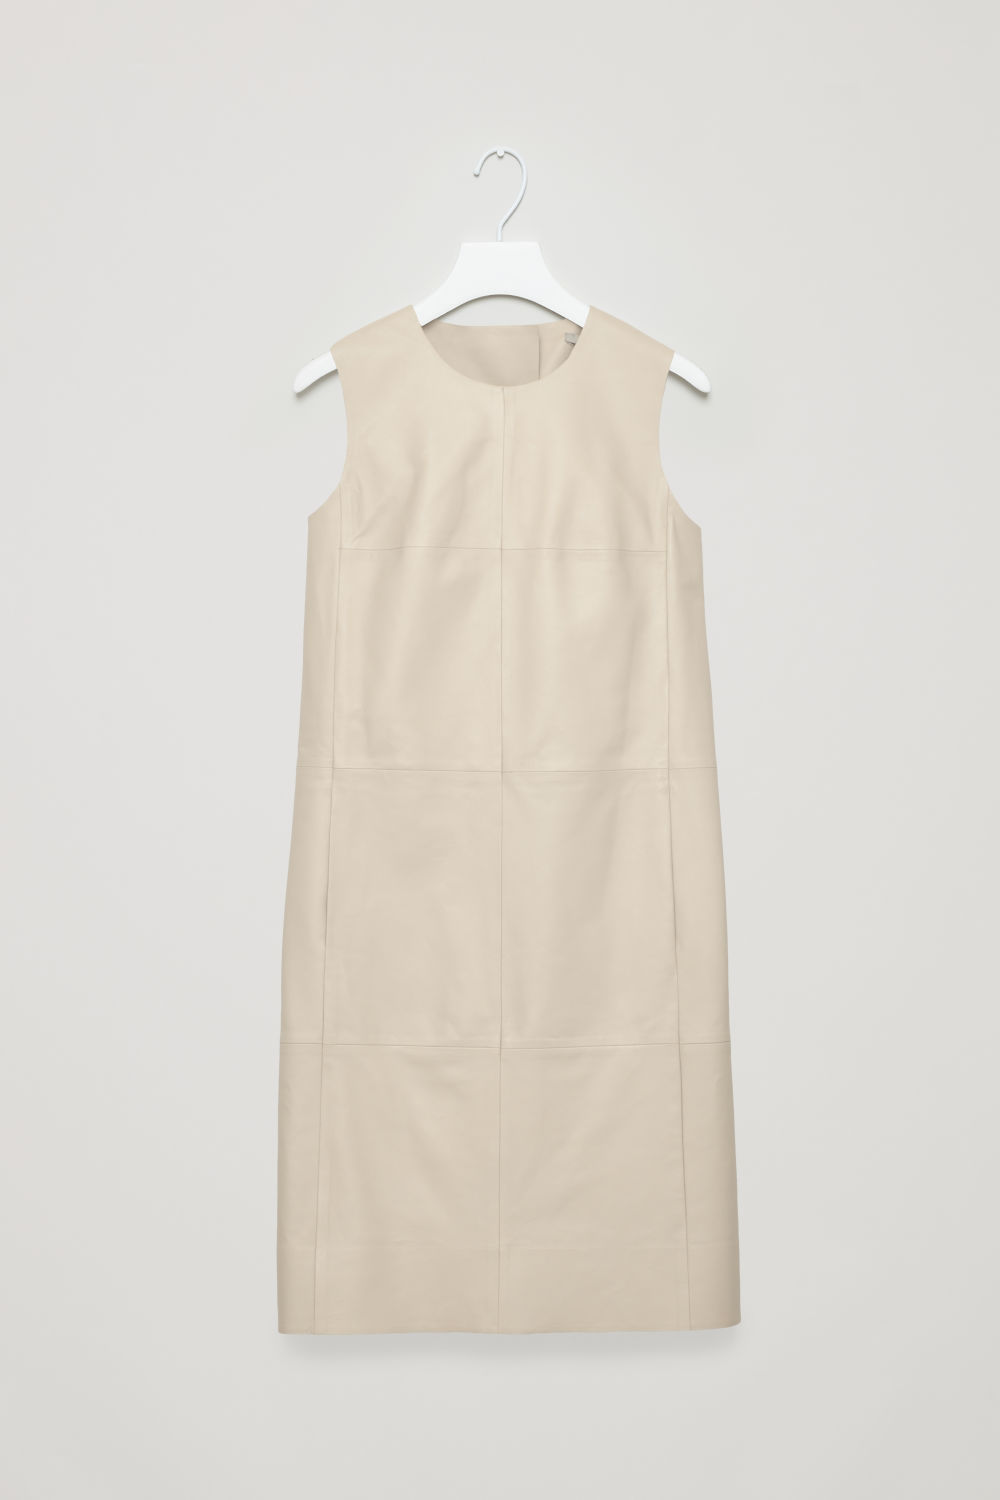 PANELLED LEATHER A-LINE DRESS